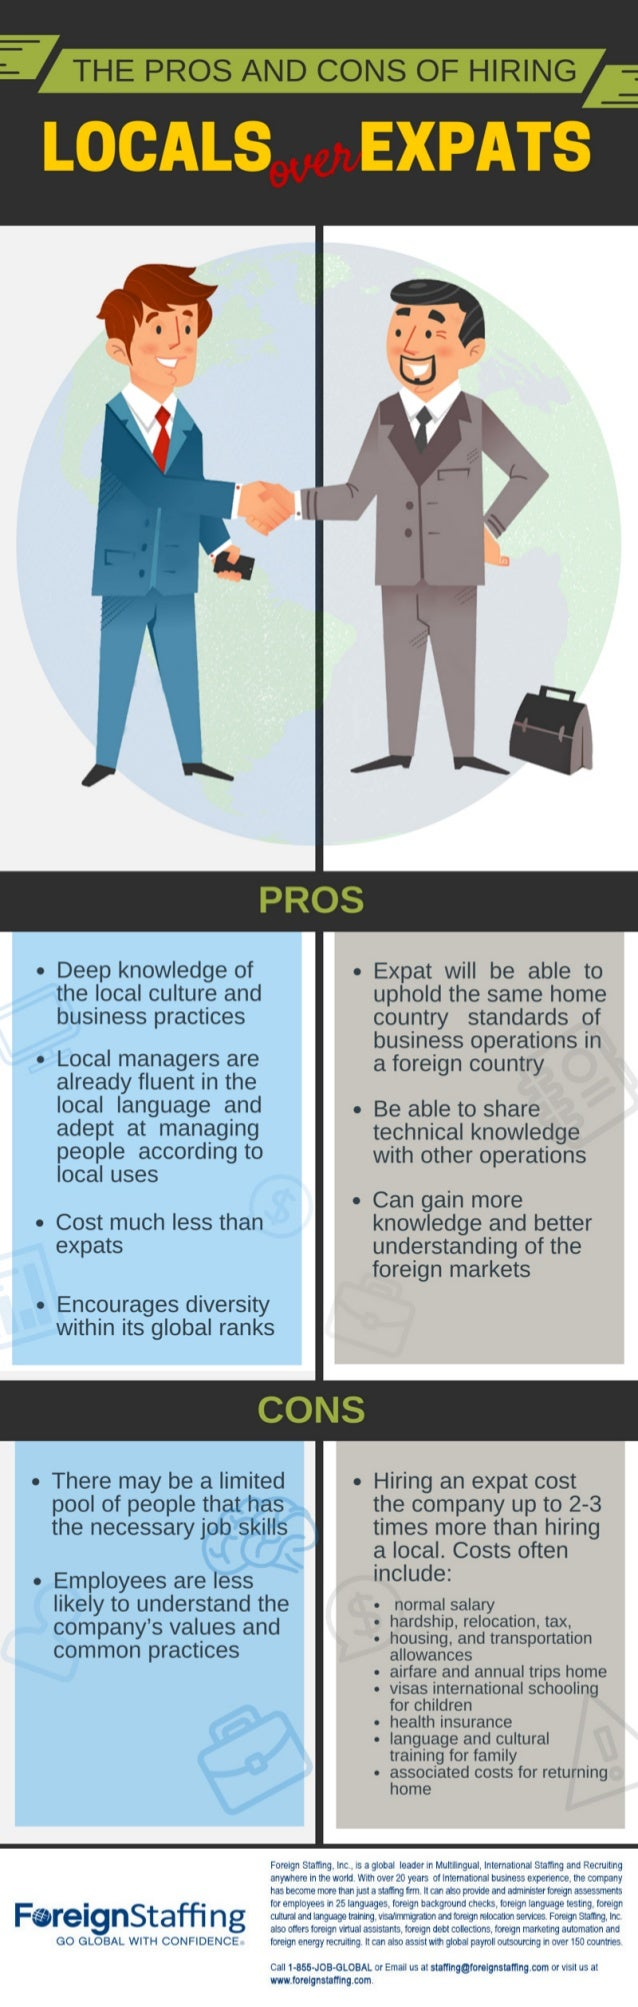 THE PROS AND CONS OF HIRING  Deep knowledge of the local culture and business practices  Local managers are already fluent...